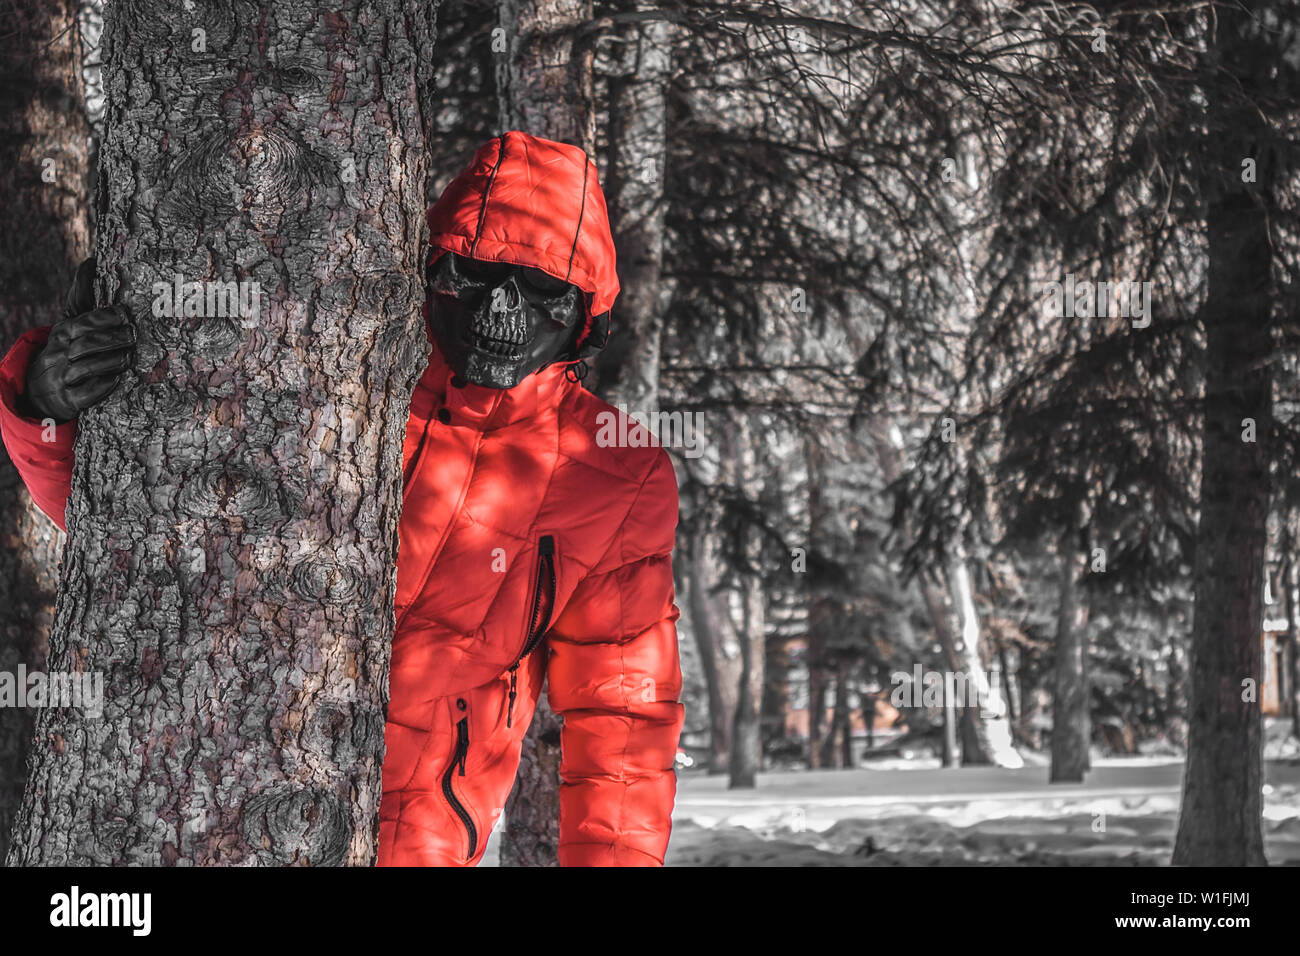 Great danger in the forests, killer on the hunt - Stock Image